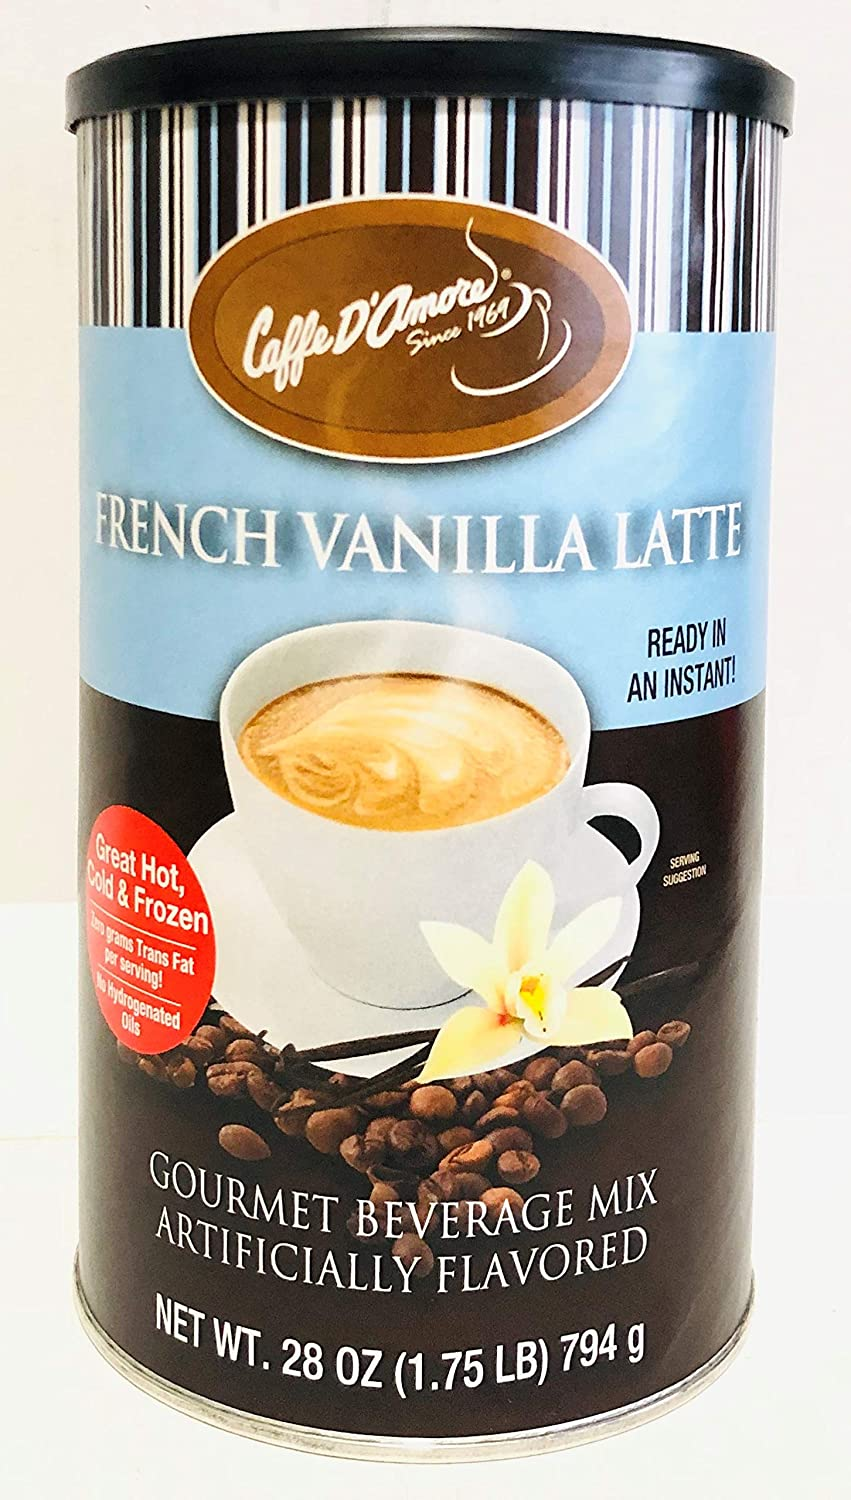 28oz Caffe D'Amore Gourmet Beverage Mix French Vanilla Latte, Pack of 1